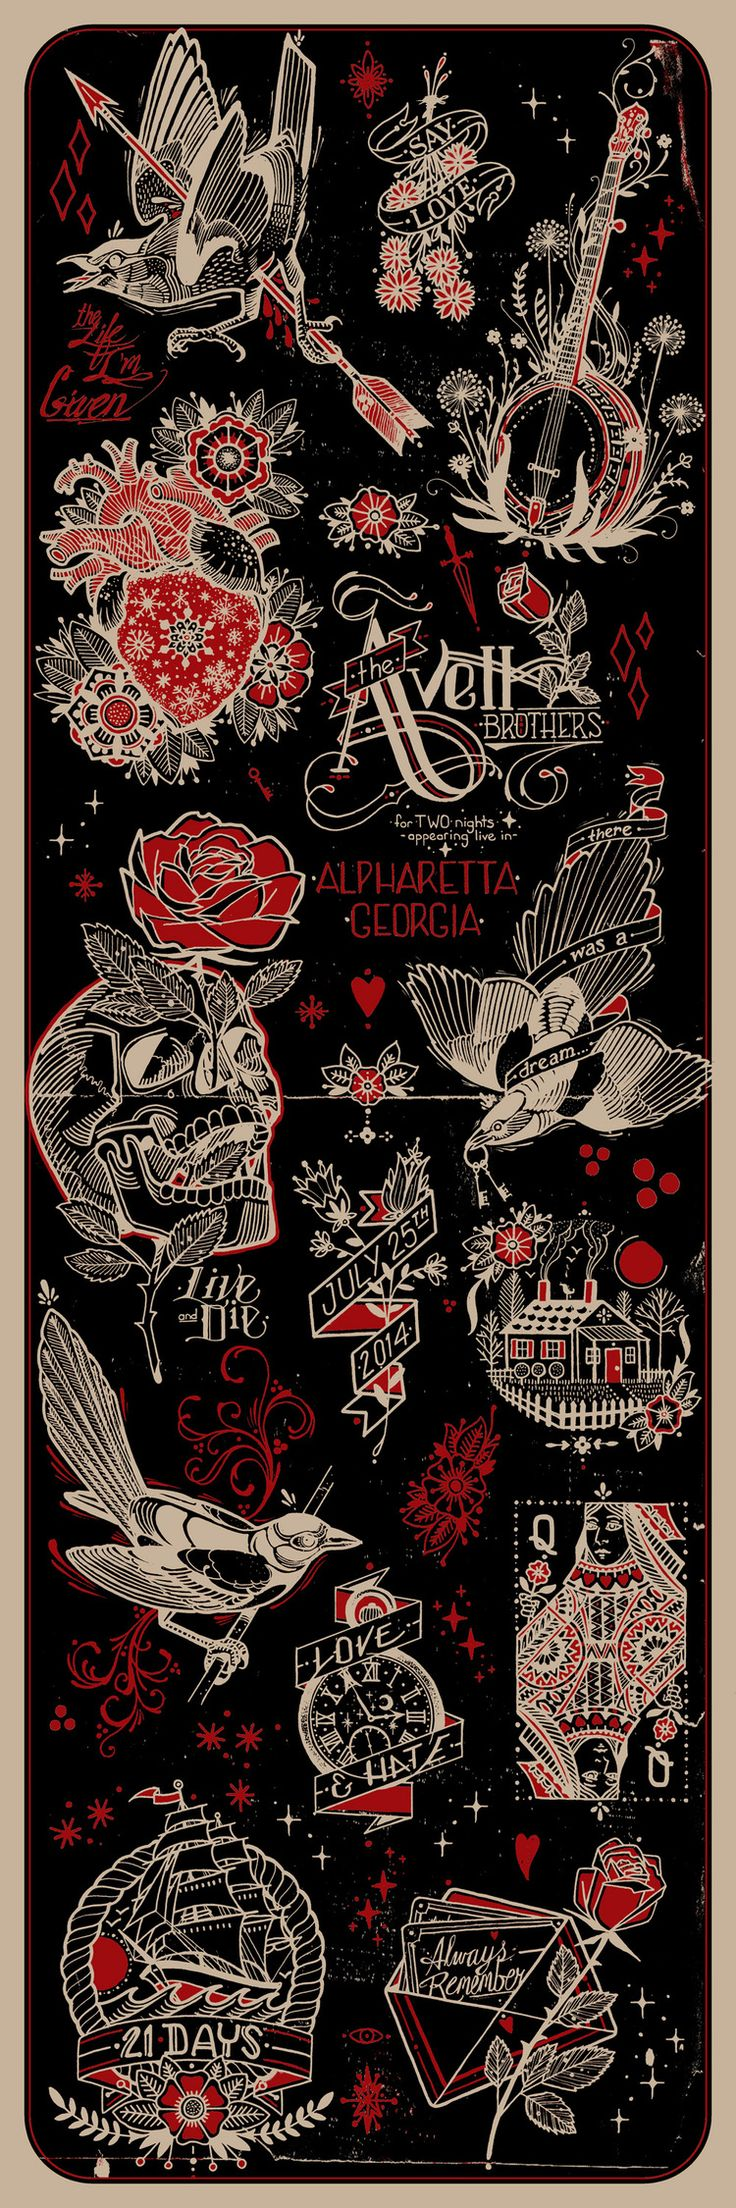 Avett Brothers gig poster by David Hale